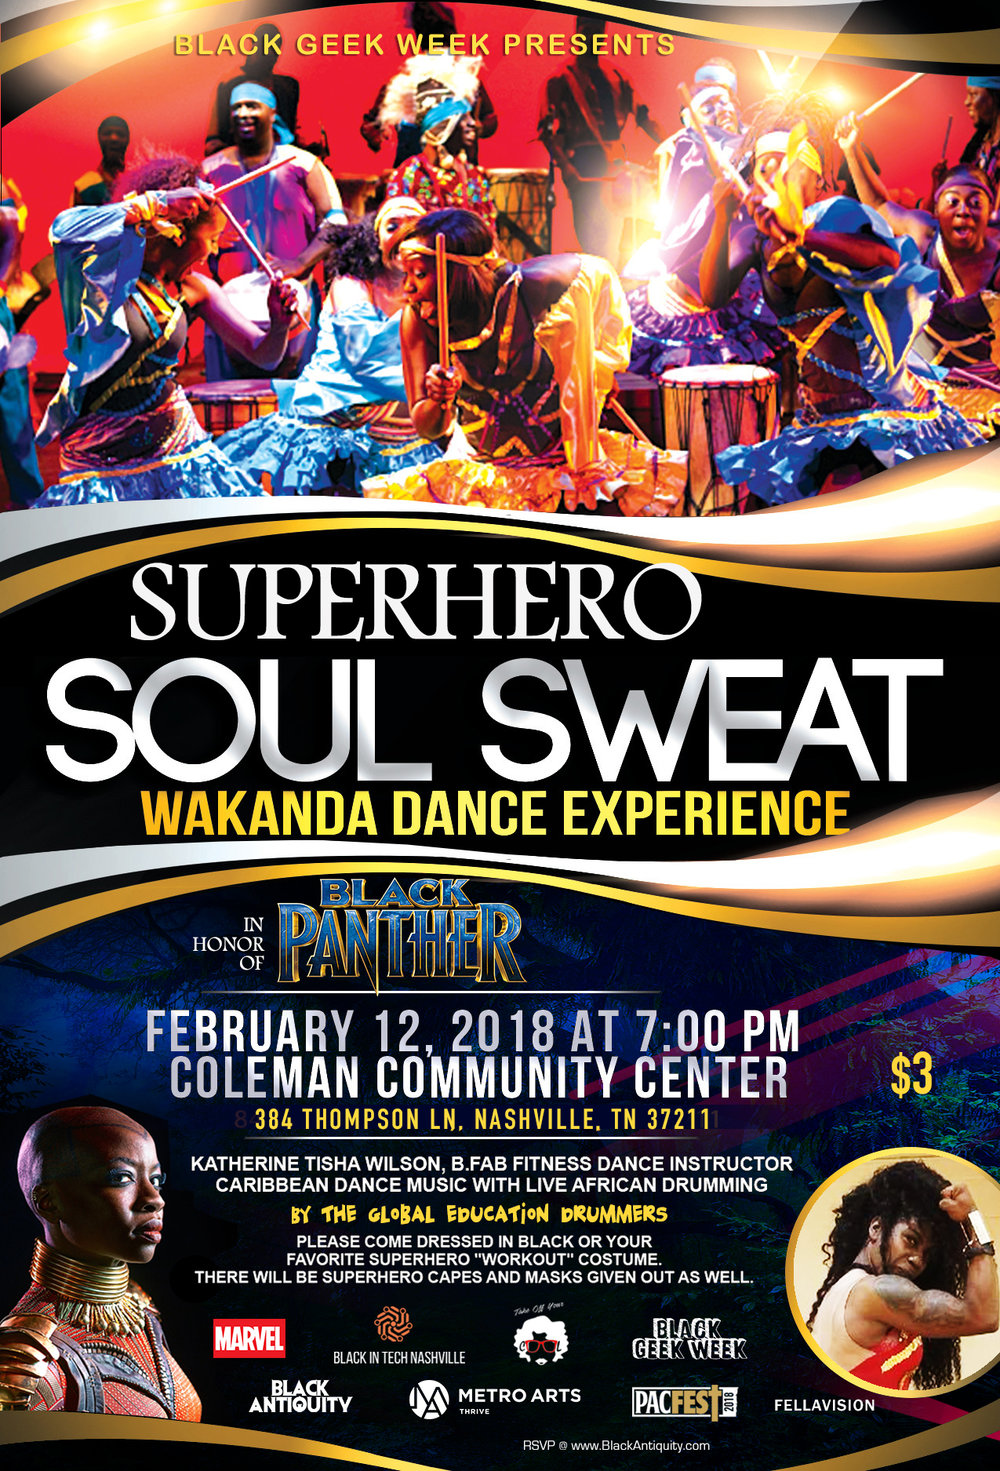 Superhero Soul Sweat - Monday, February 12, 2018Wakanda Dance Experience hosted by Katherine Tisha Wilson, B.Fab Fitness Dance Instructor. Caribbean Dance Music With Live African Drumming.